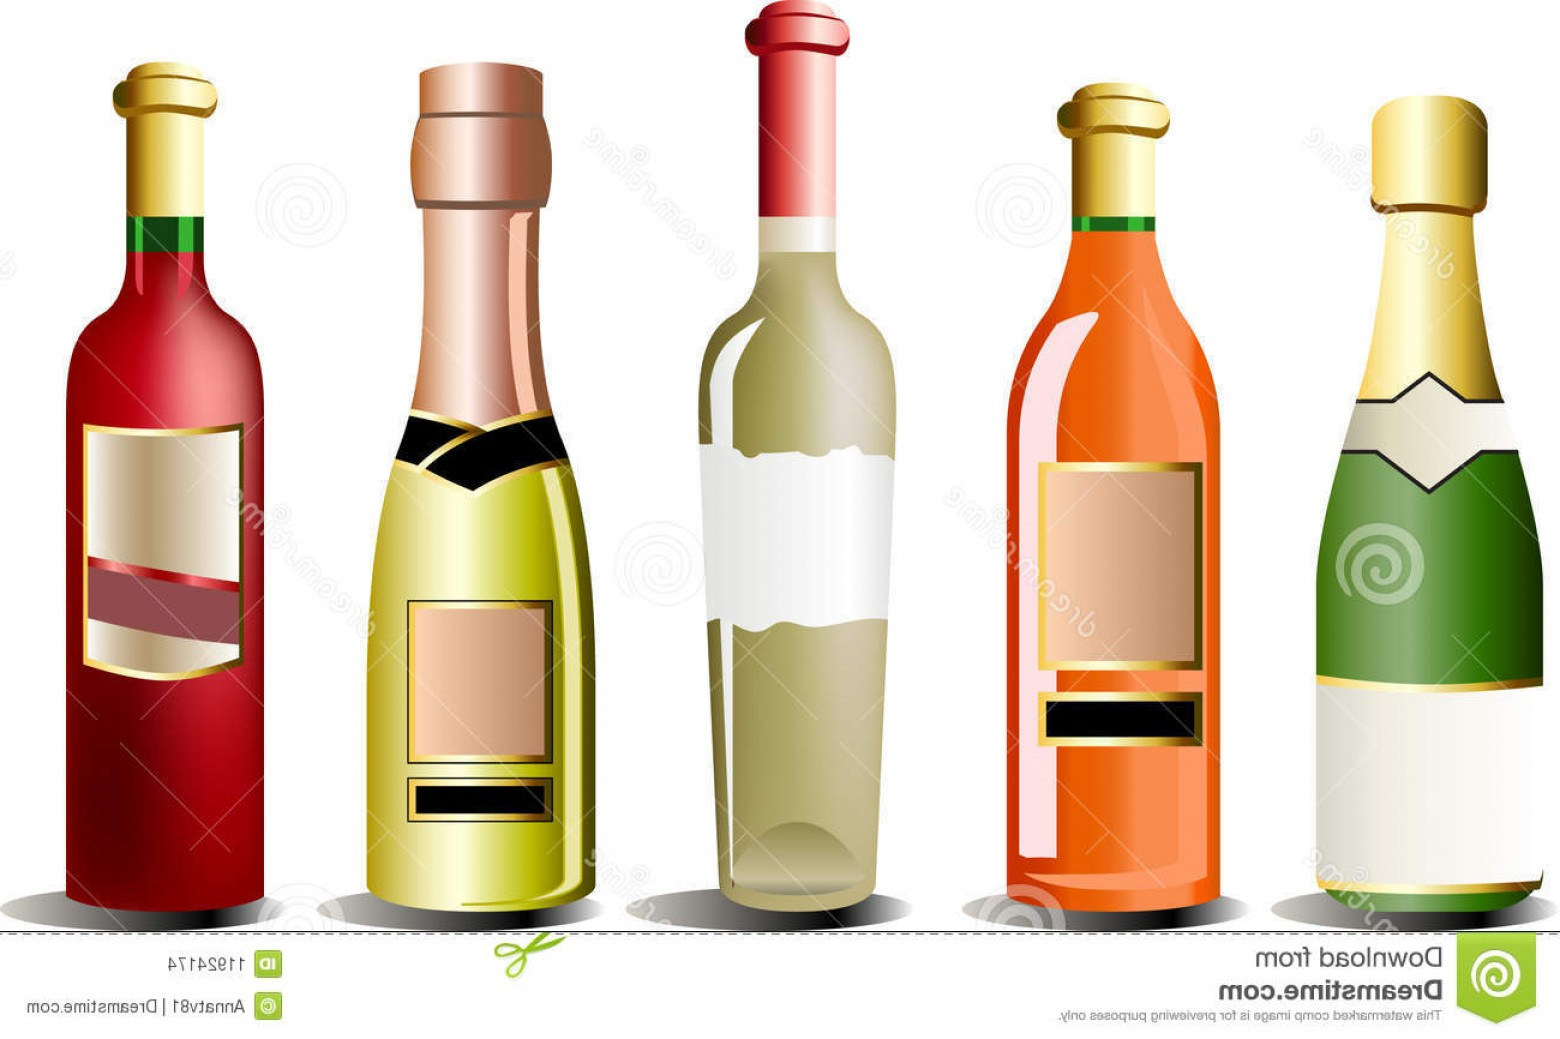 Alcohol Vector: Stock Images Vector Bottles Alcohol Image